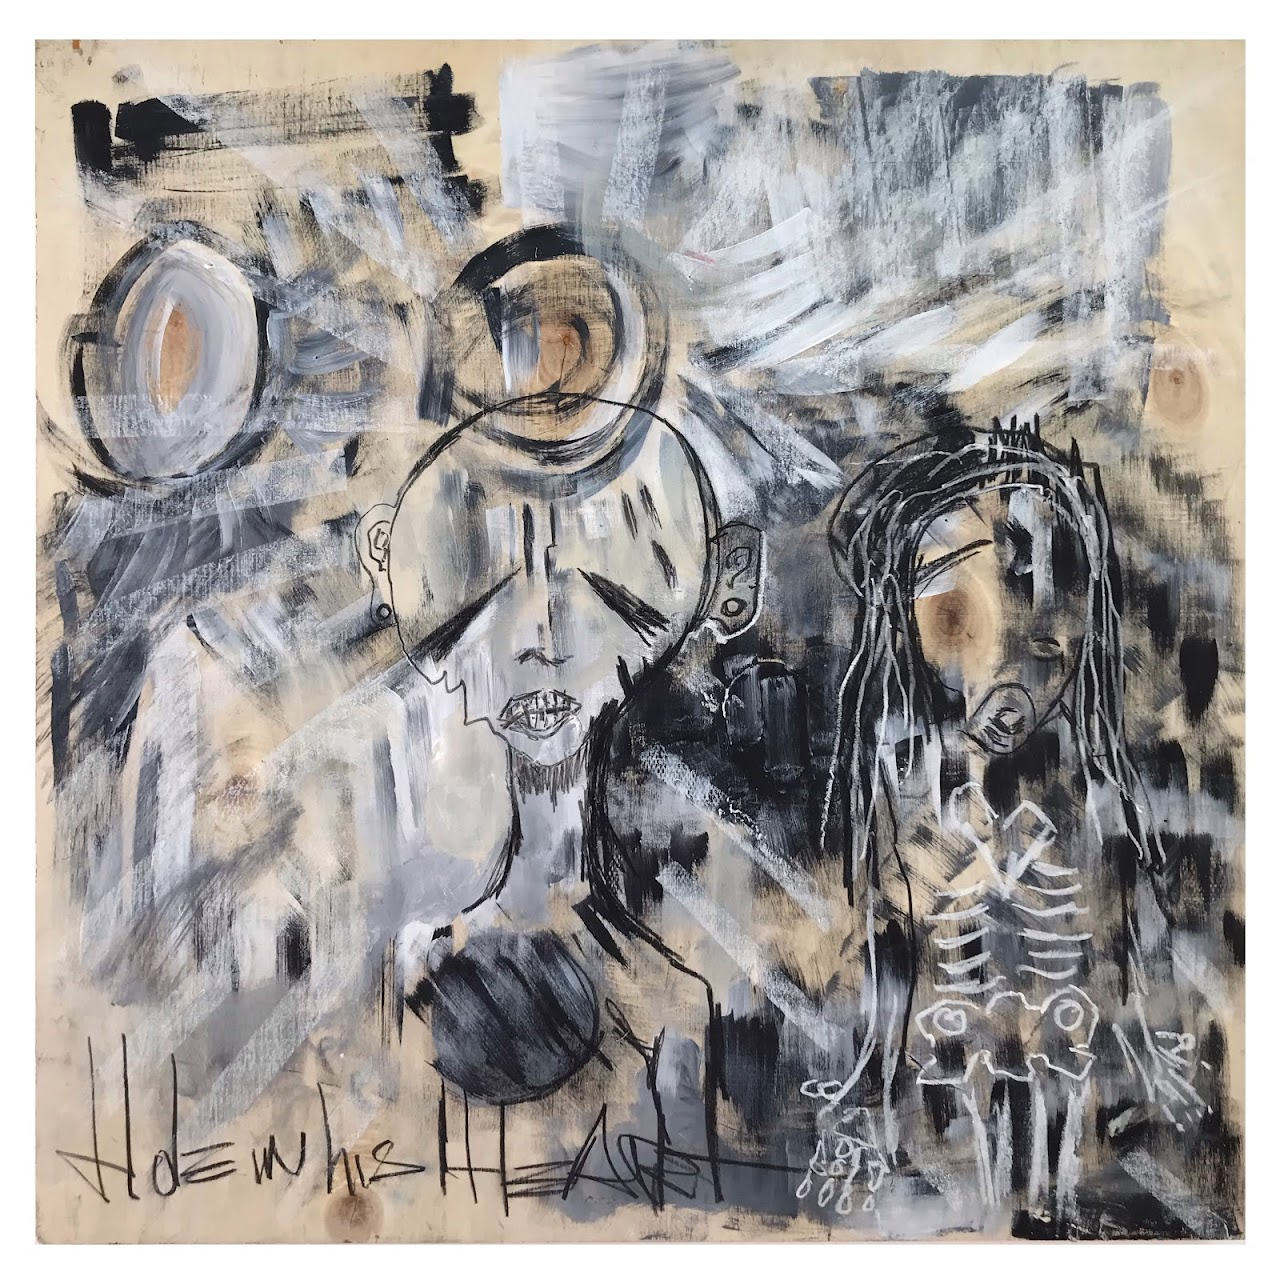 Davey Cadaver 'Love Is Blind' Signed Mixed Media Painting